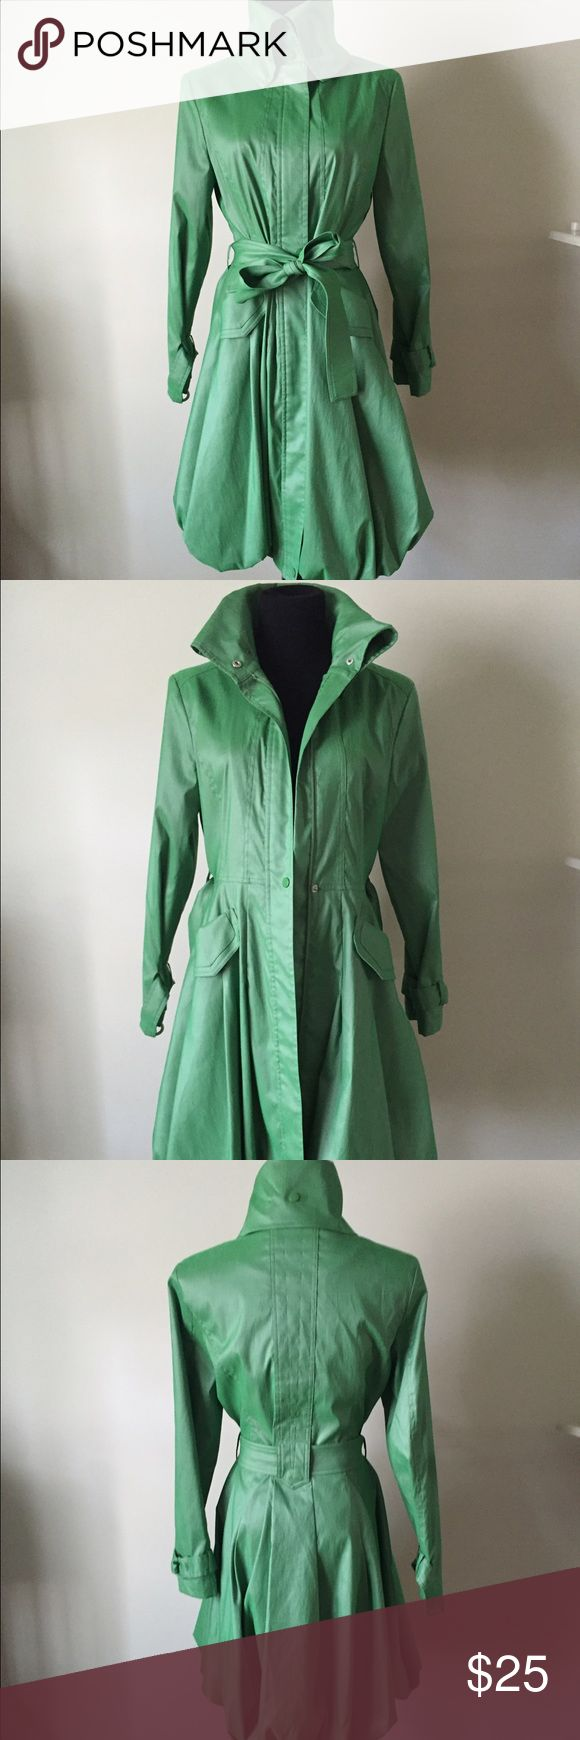 Long Green Trenchcoat Stylish raincoat with high neckline, cute belt. Great to wear when dressing up but need coverage from the rain or wind! D & Y Jackets & Coats Trench Coats